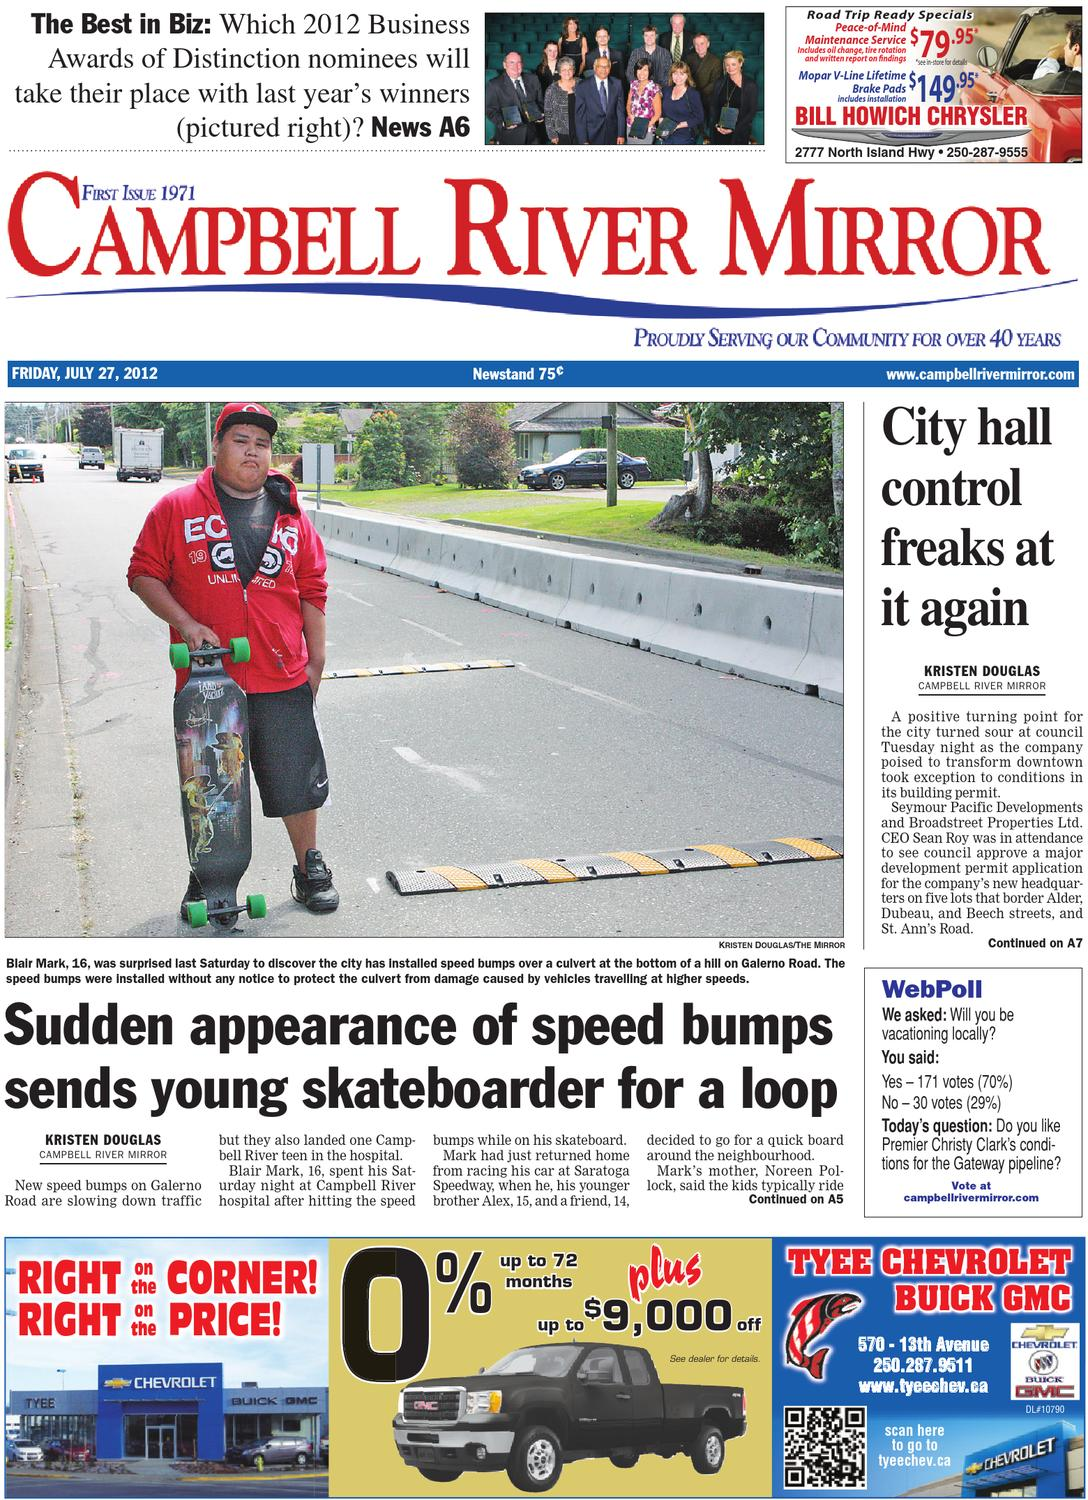 Campbell River Mirror July 27 2012 By Black Press Issuu Rotative Speed Regulator Borer Driller Controller